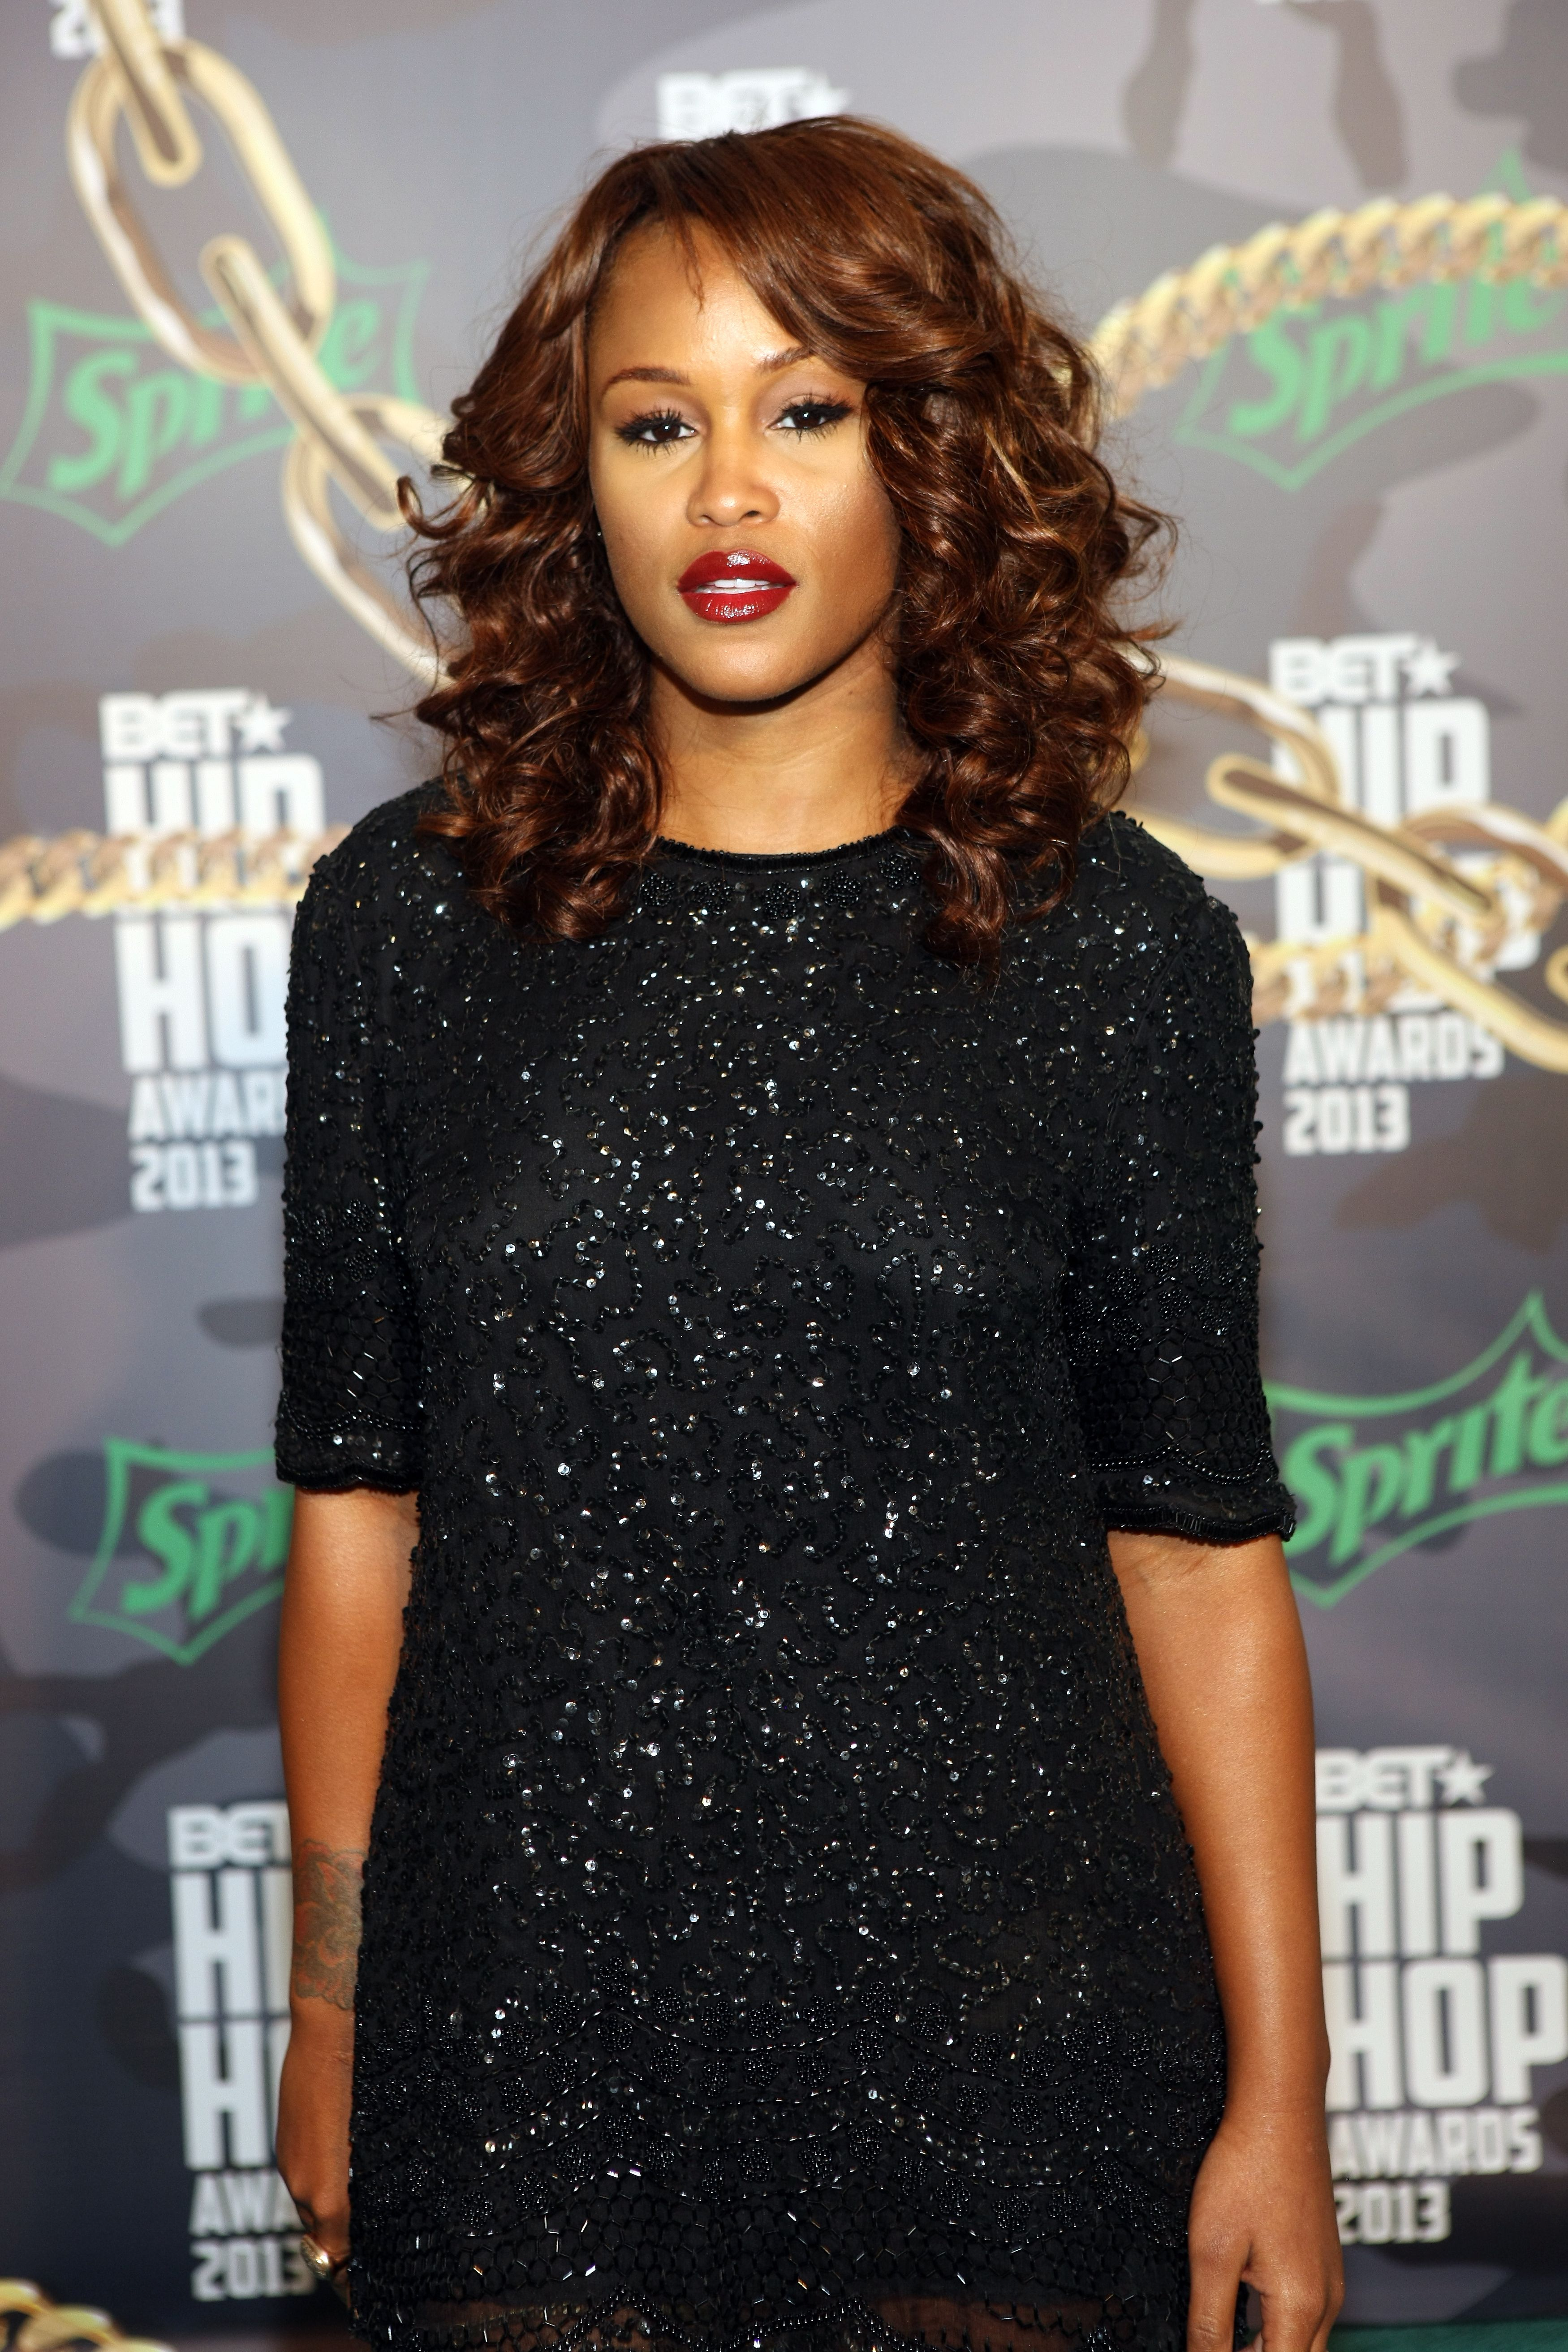 Eve at the BET Hip Hop Awards on Sept. 28, 2013 in Atlanta, Georgia   Photo: Getty Images